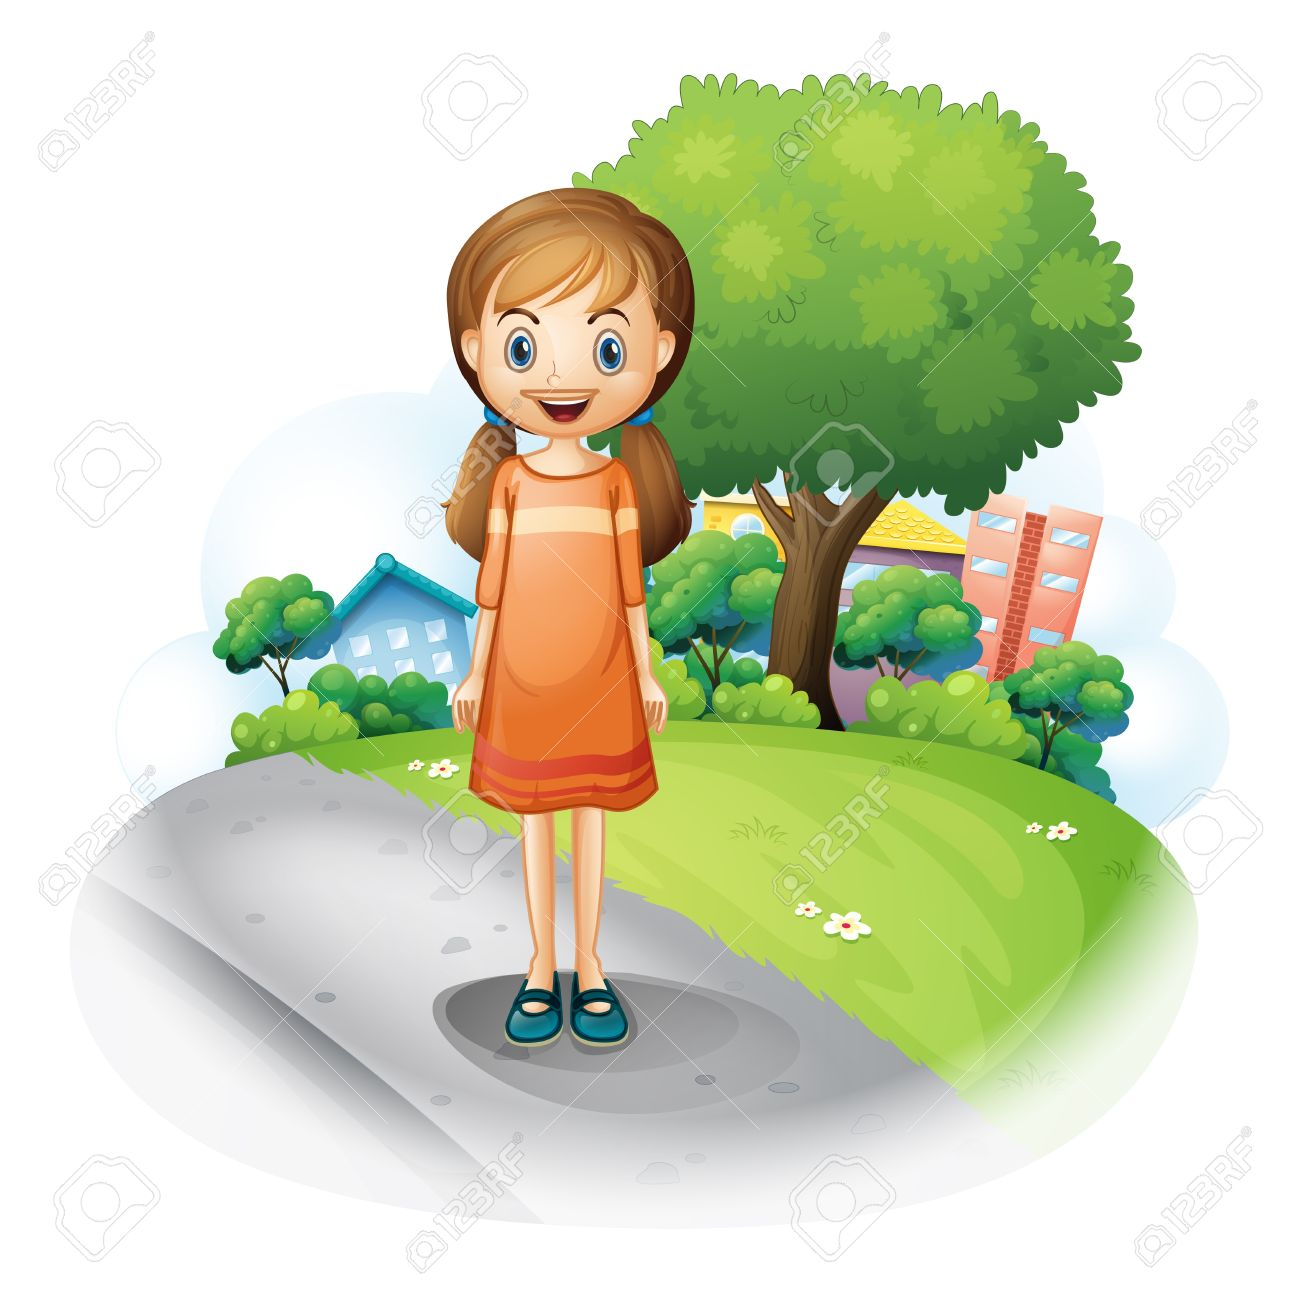 Clipart Of Girl Standing Alone.